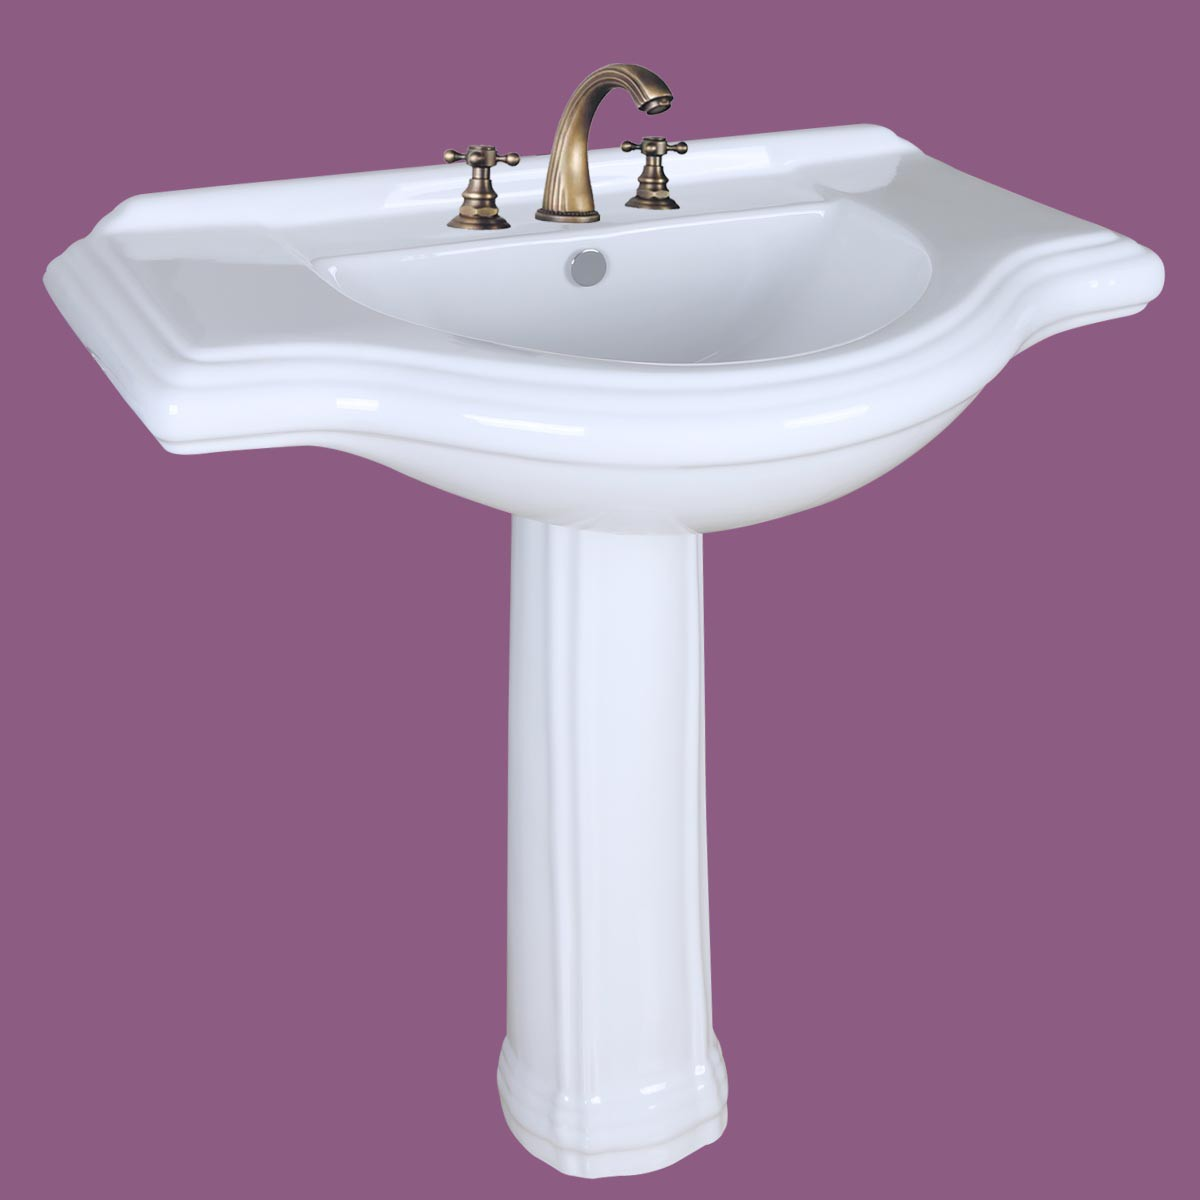 ... U003cPREu003eWhite Porcelain Large Bathroom Pedestal Sink 34 Inc Wide  Widespread Faucet Holesu003c ...